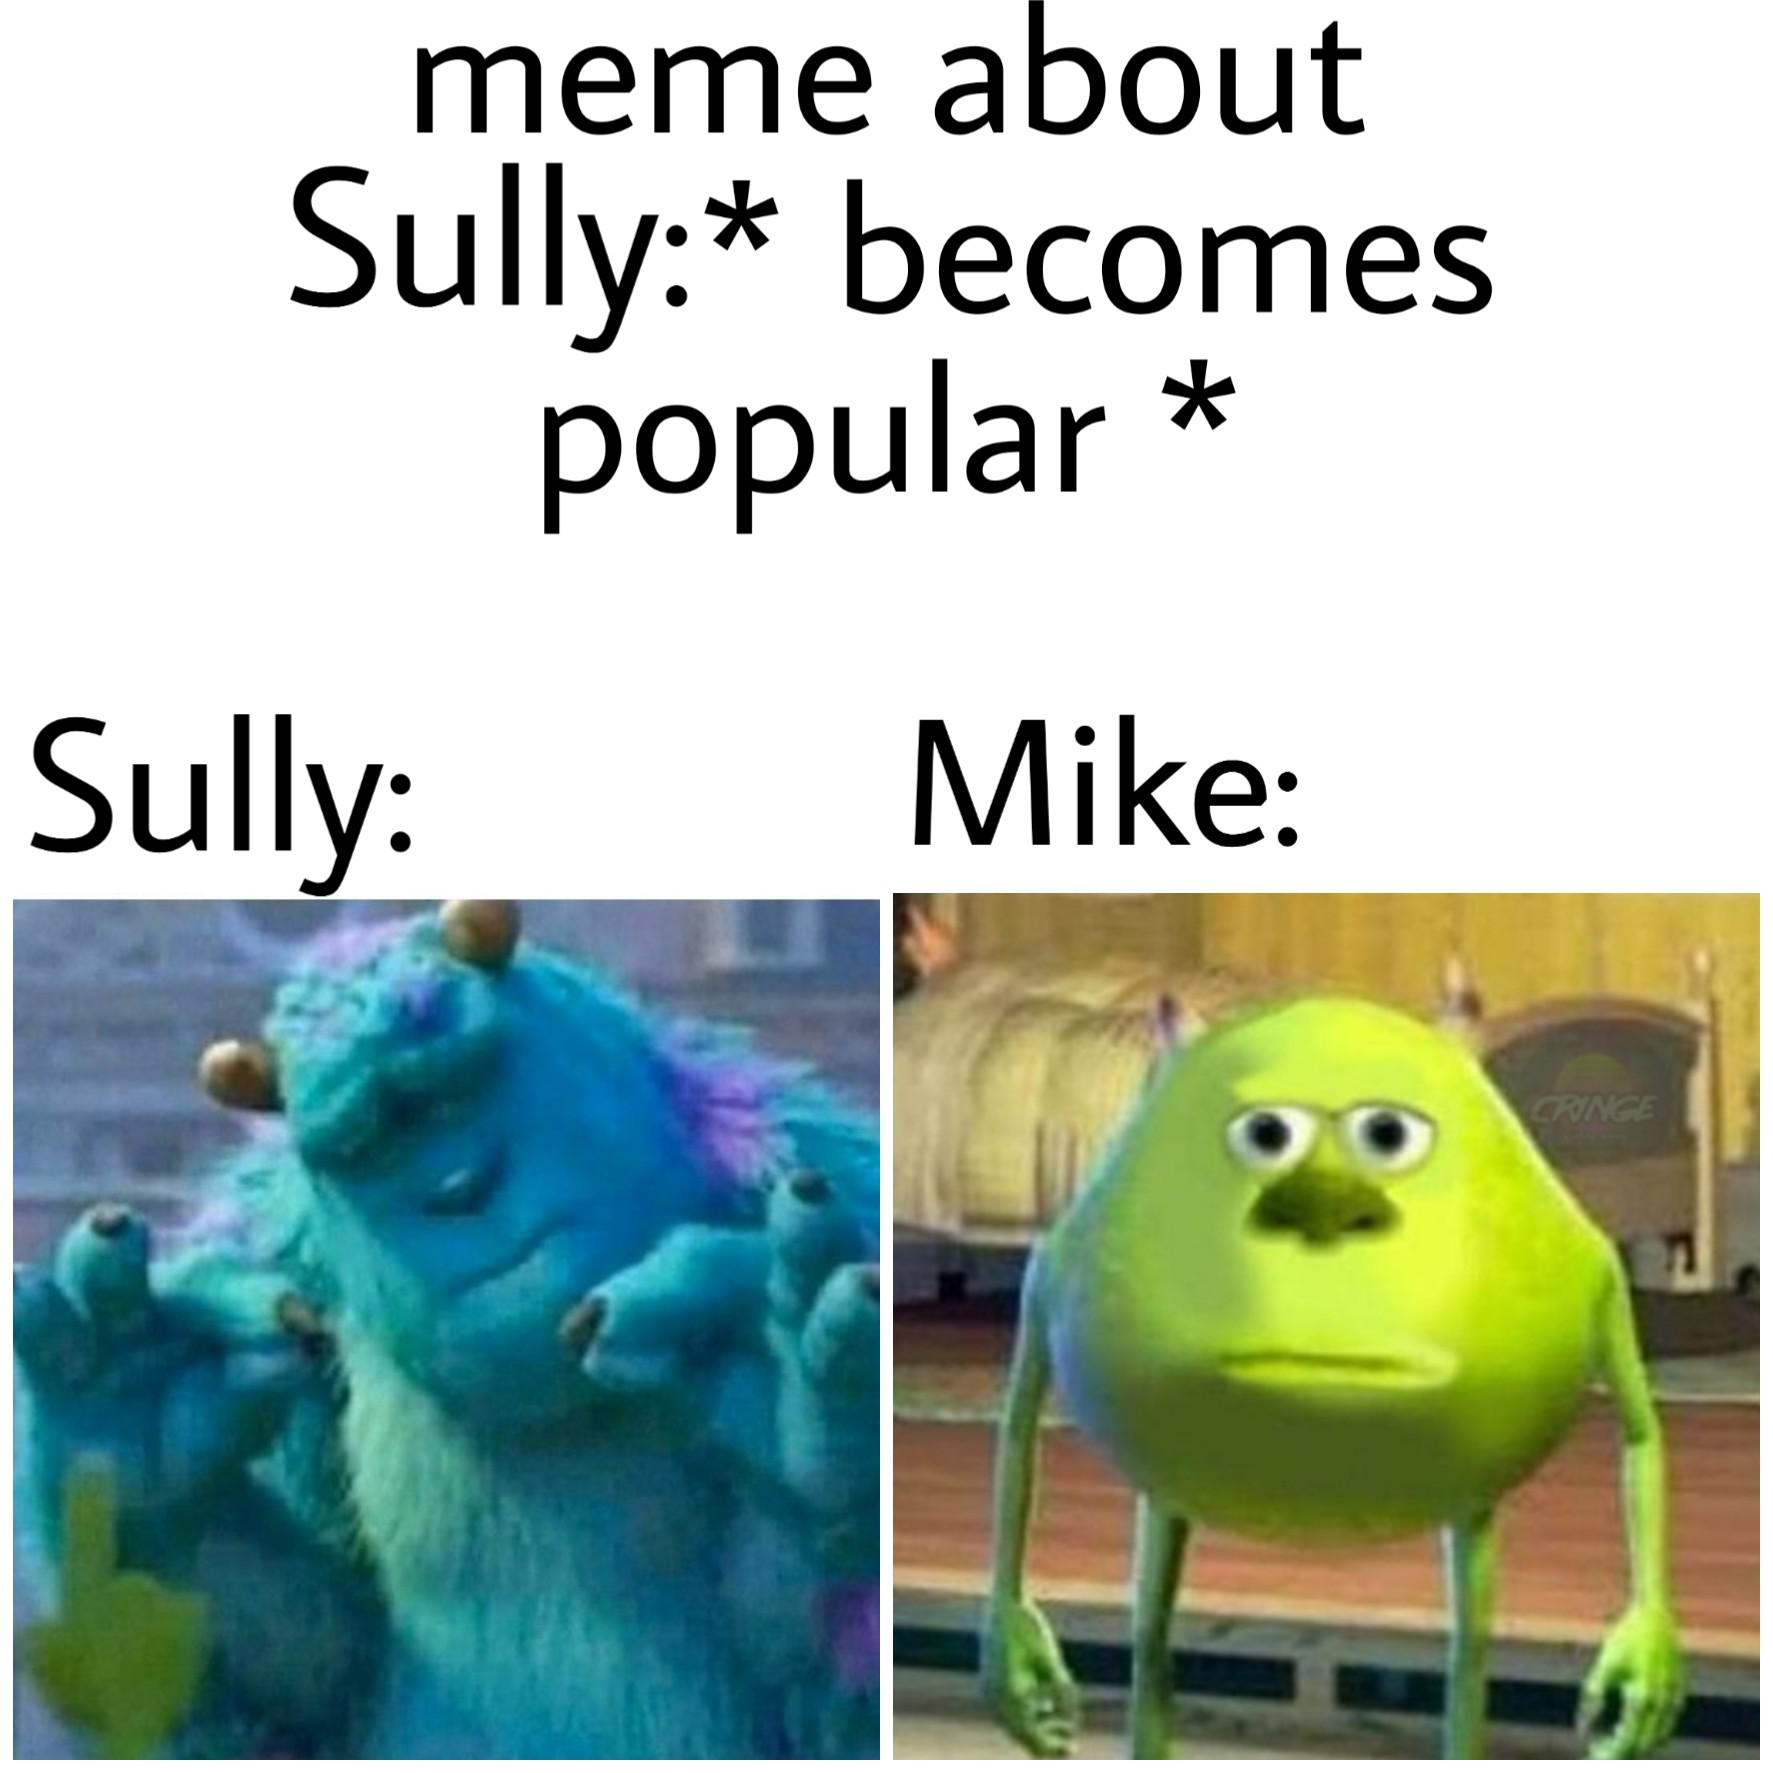 sully pinch meme, sully finger pinch, sully finger pinch meme